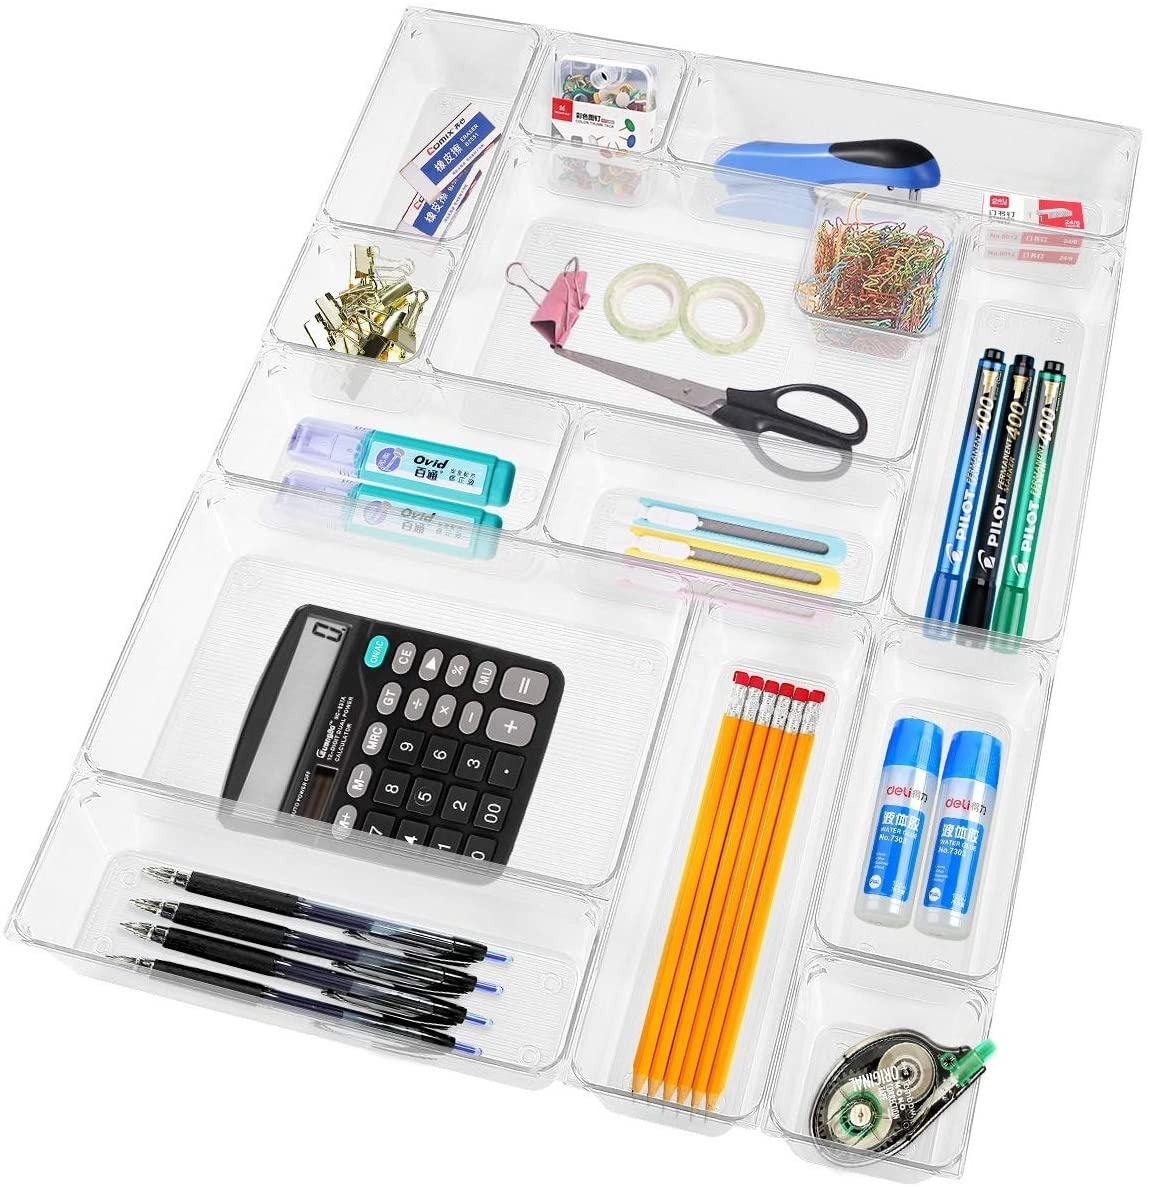 Simply Video, Clear Acrylic Junk Drawer Organizers